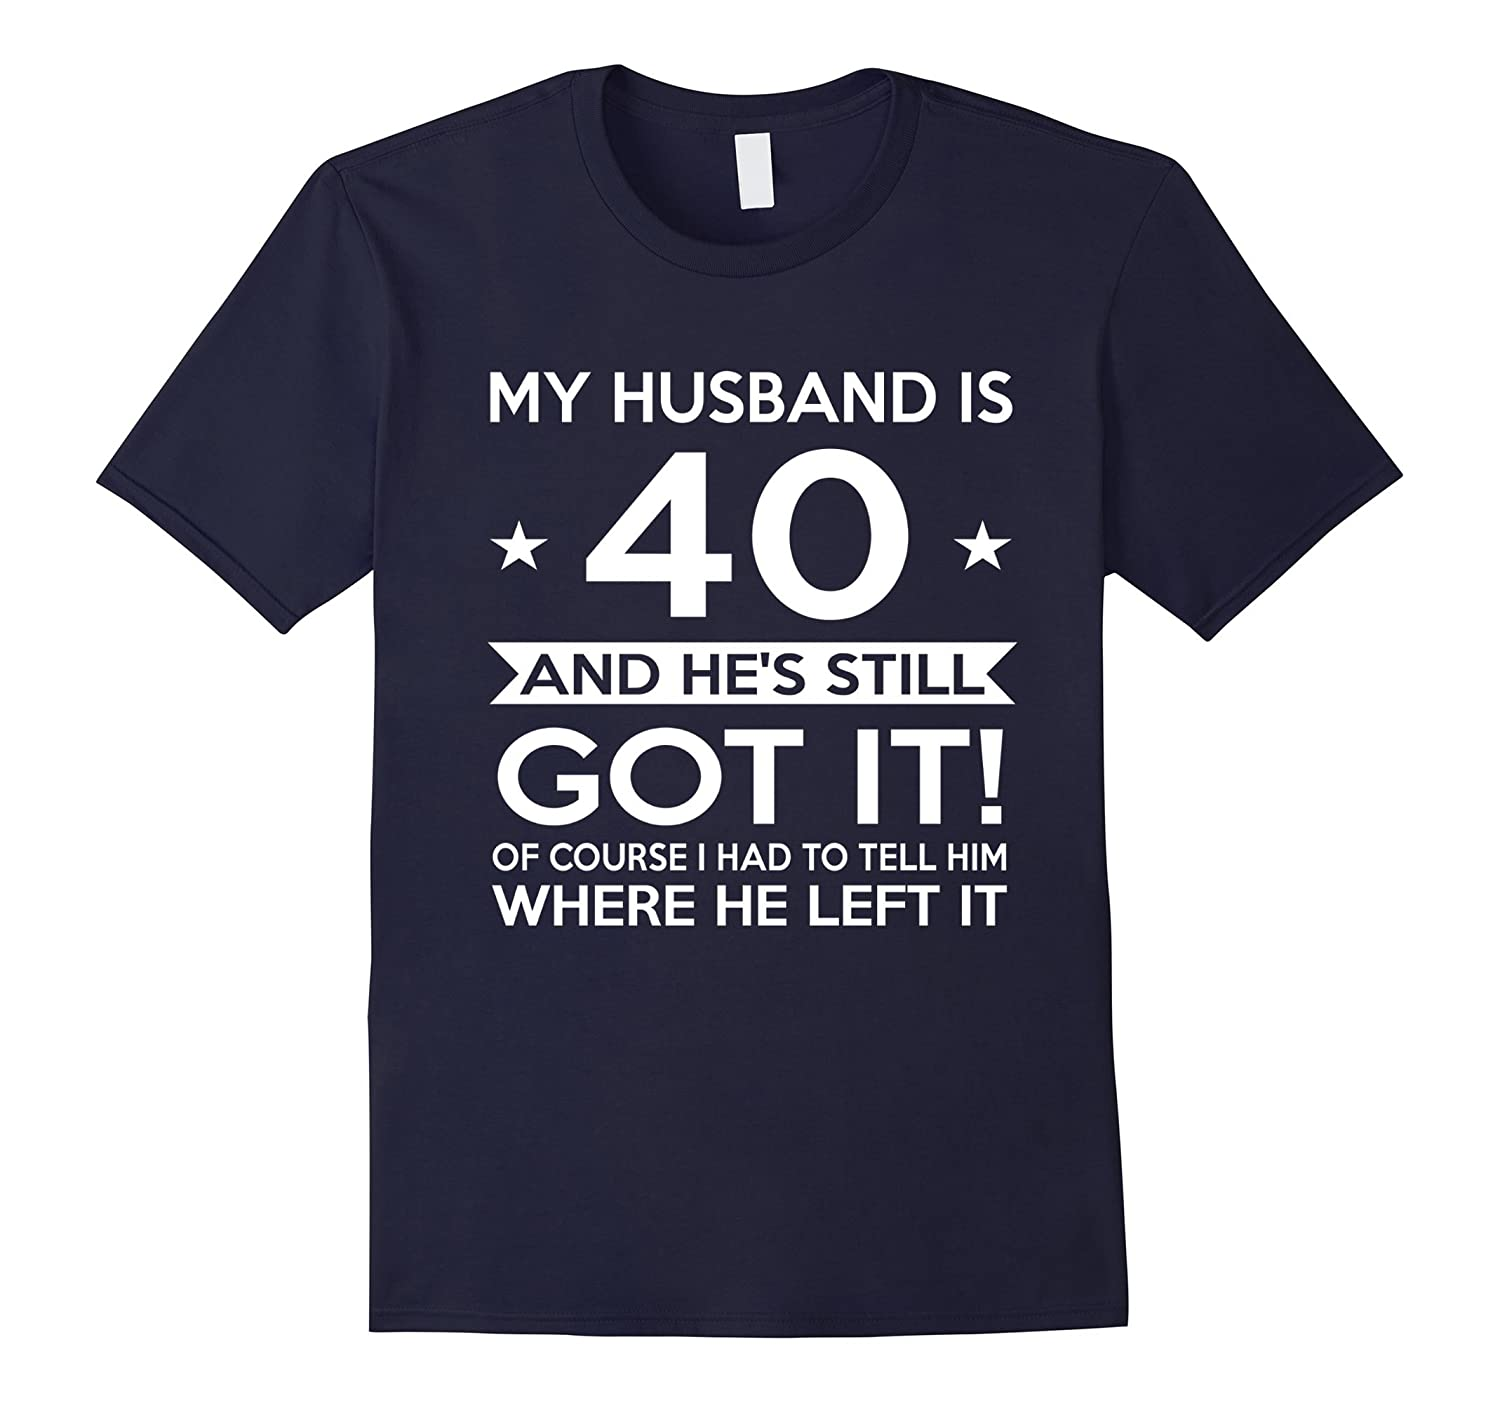 e938838a0fa4 Gift Ideas For My Husband 40th Birthday - BestChristmasGifts.CO